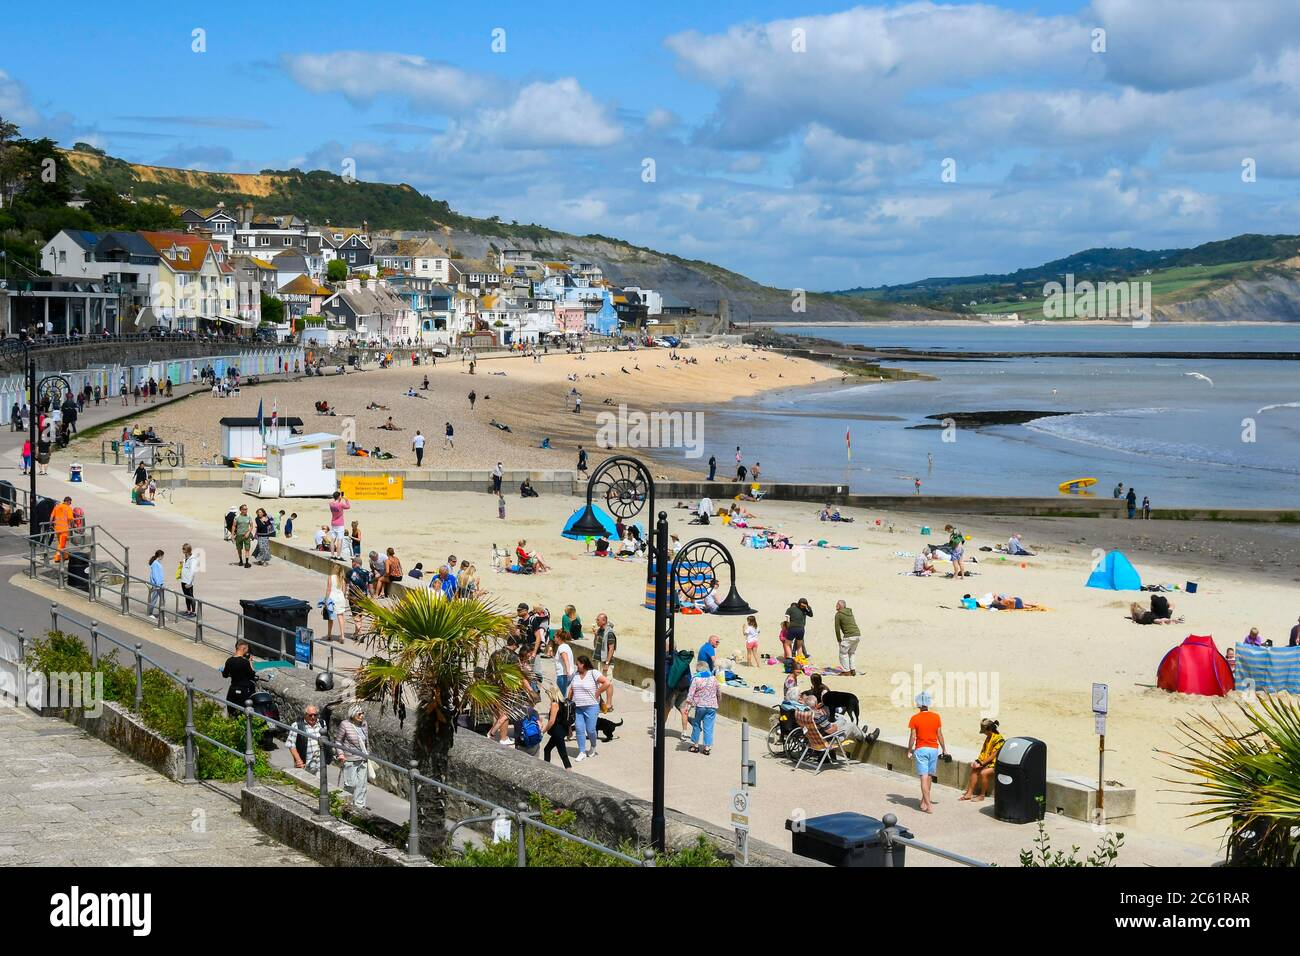 Lyme Regis, Dorset, UK.  6th July 2020.   UK Weather:  The beach is busy with families and sunbathers at the seaside resort of Lyme Regis in Dorset on a day of warm sunny spells.  Picture Credit: Graham Hunt/Alamy Live News Stock Photo